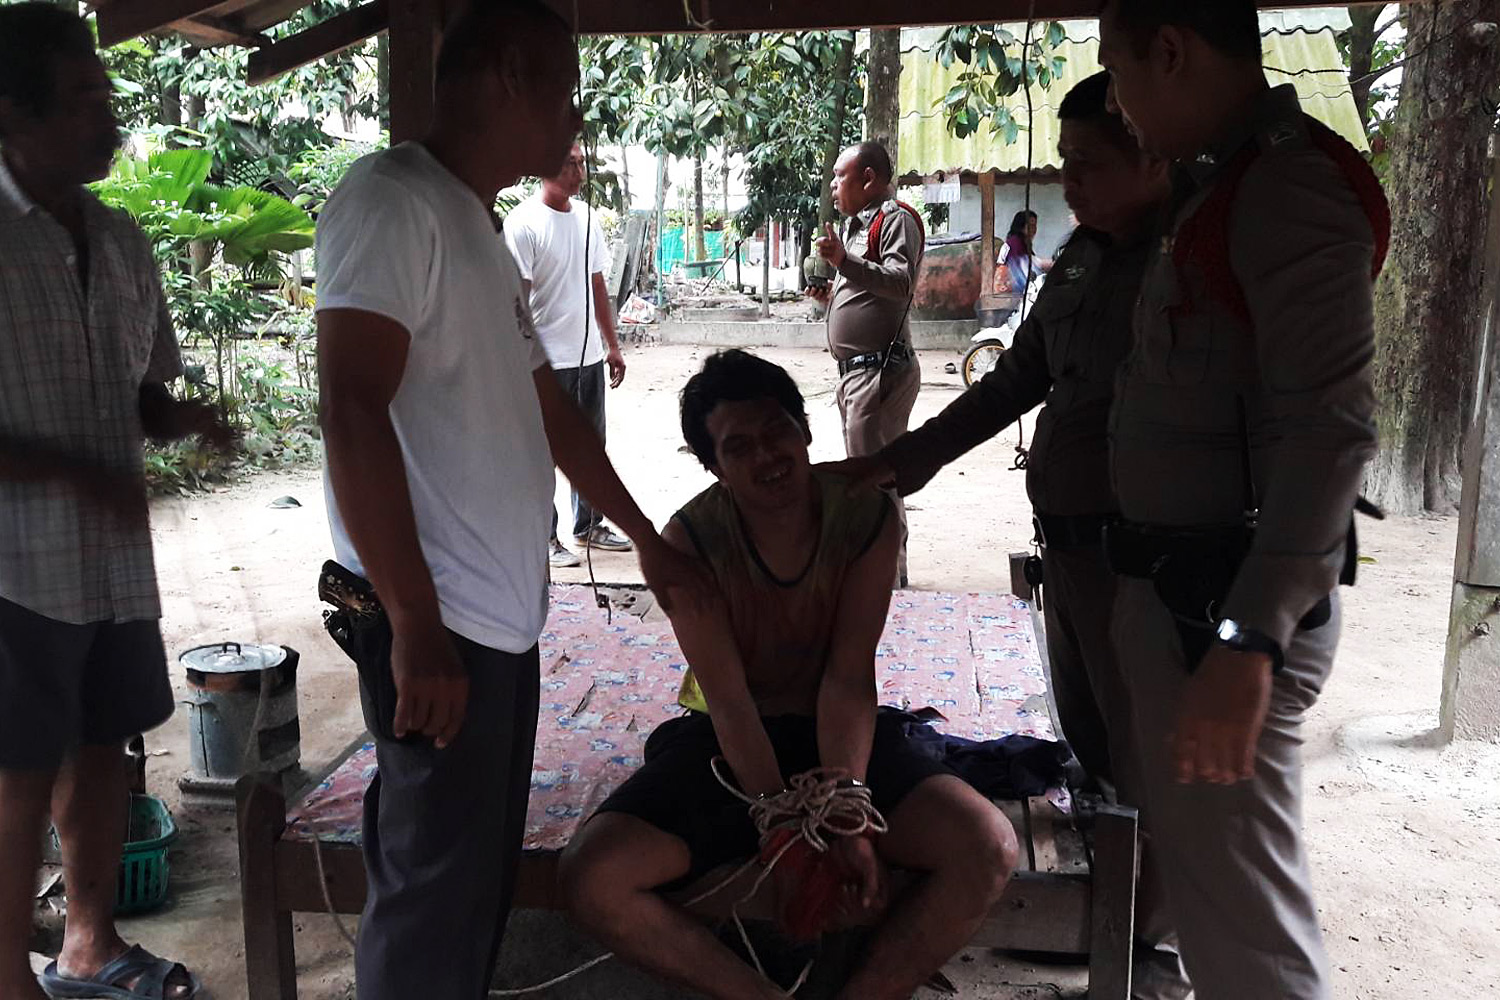 A man believed to be high on drugs killed his son and injured his wife with an axe in Nakhon Si Thammarat on Sunday. (Photo by Nujaree Raekrun)